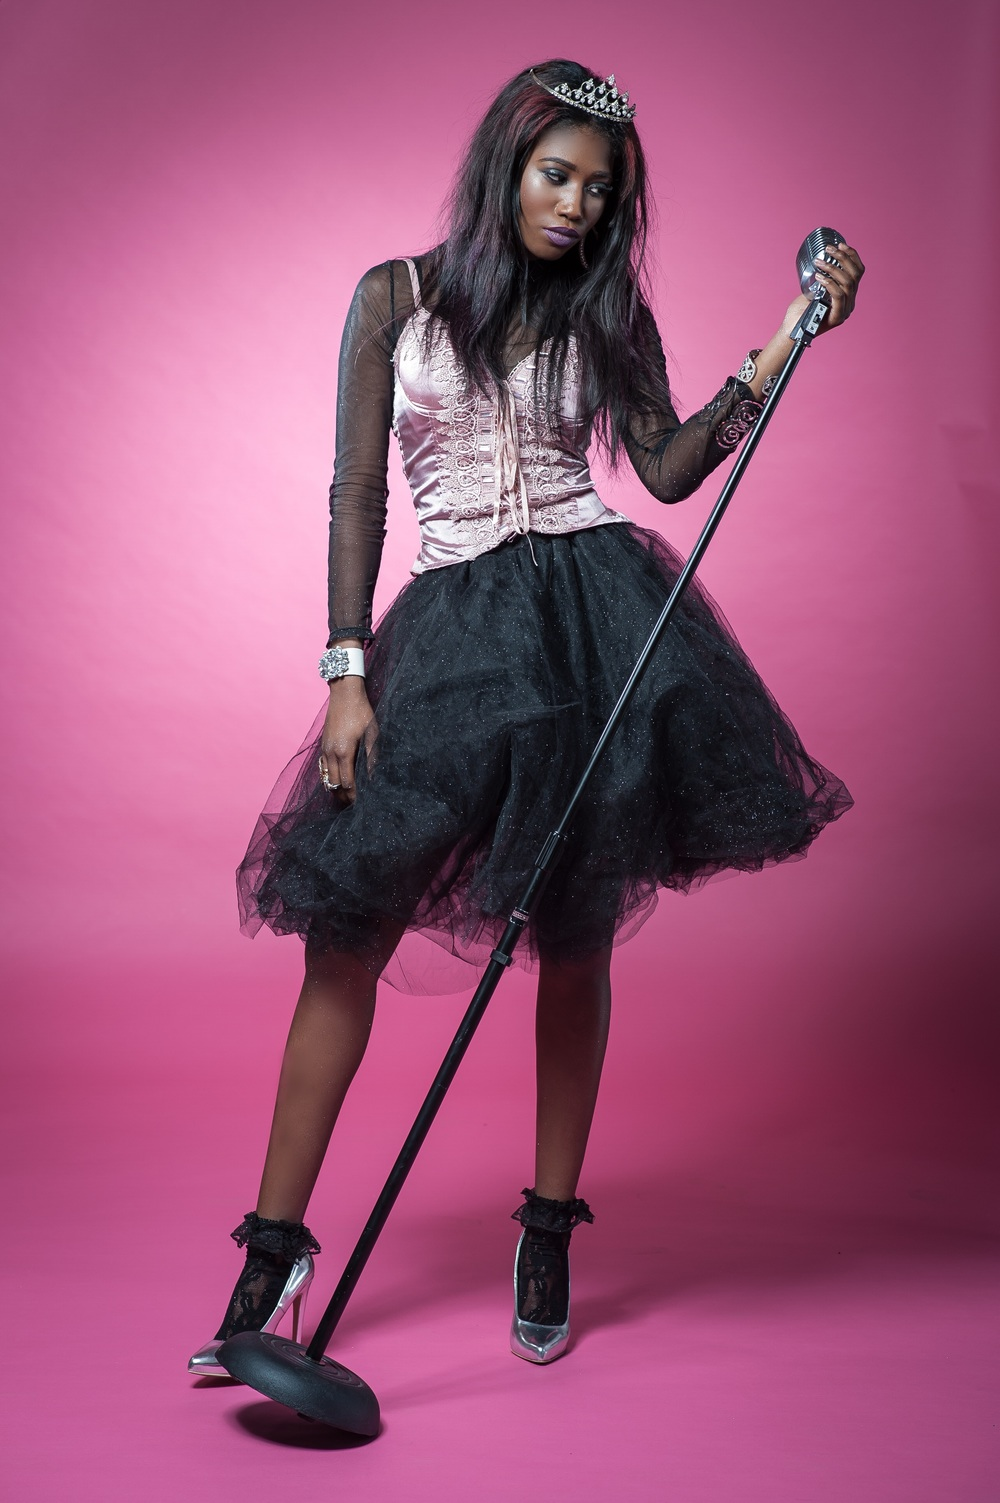 The prom queen accepts her titlein Look 1: Mesh top and pink satin bejeweled bustier, black glittery tutu (designed by me), vintage lace socks and classic silver pumps, glam accessories and the perfect prom tiara!